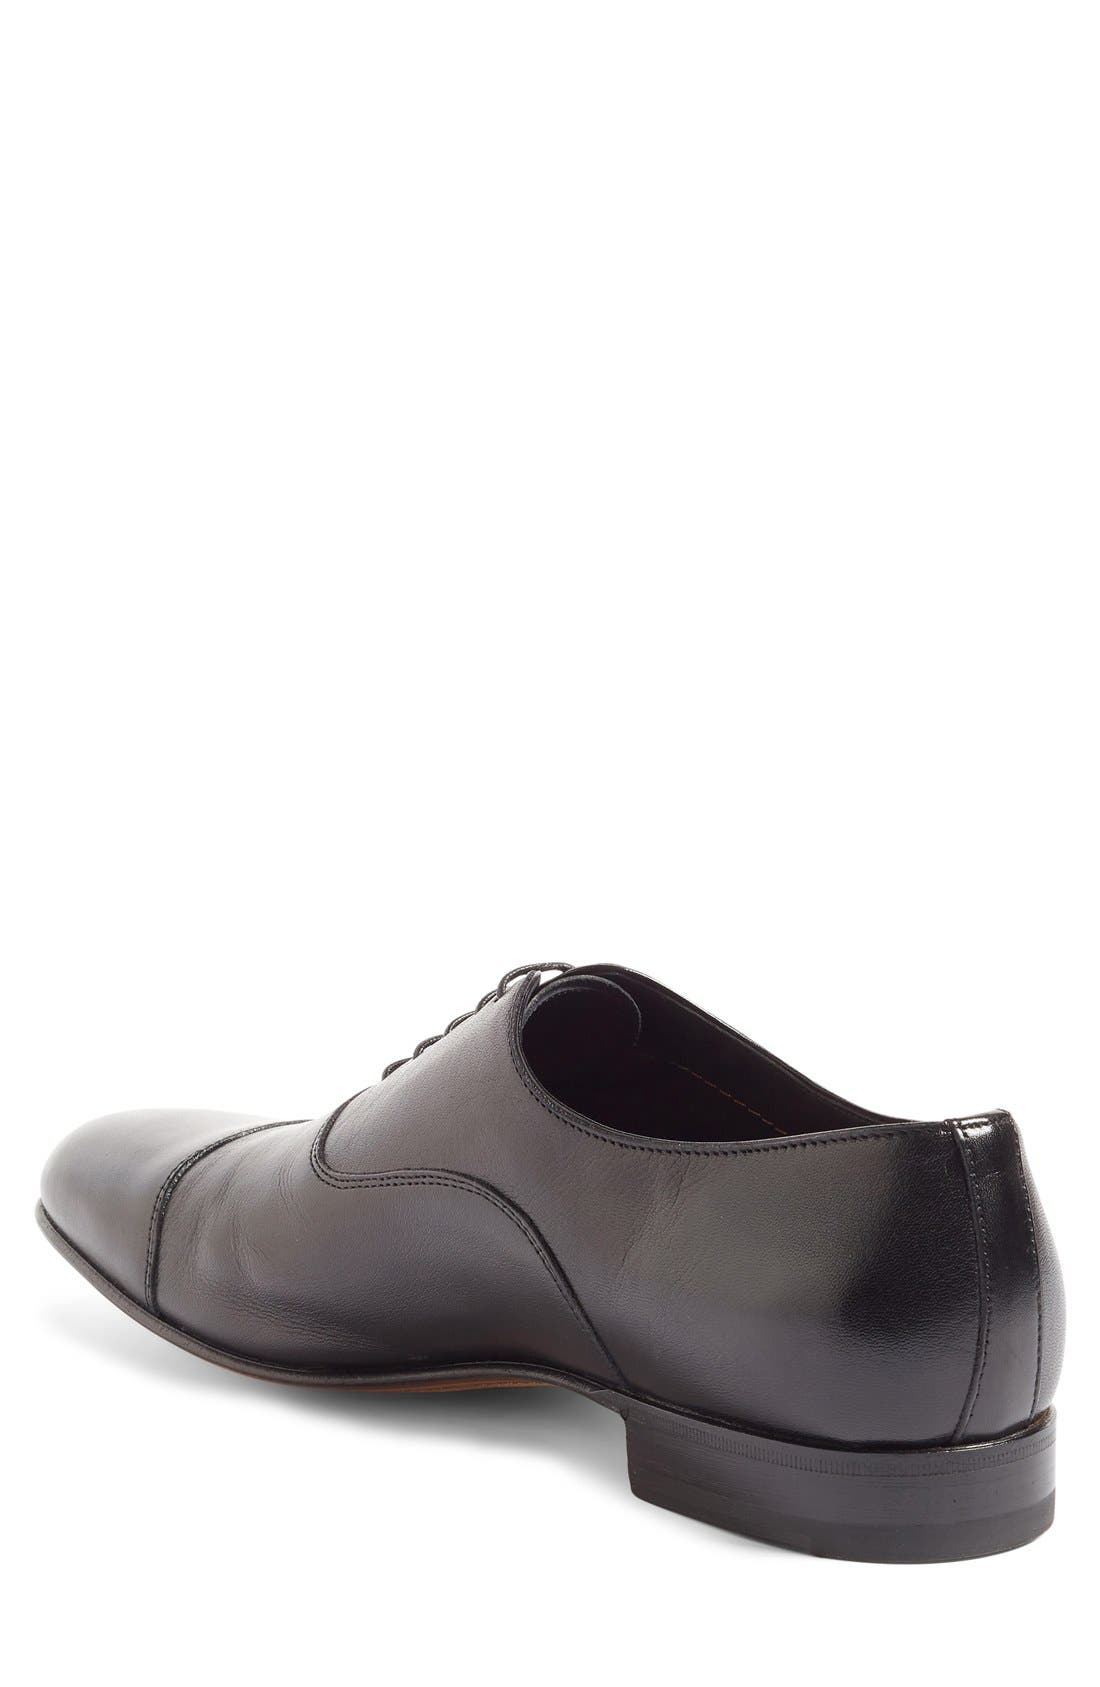 Darian Cap Toe Oxford,                             Alternate thumbnail 4, color,                             BLACK LEATHER